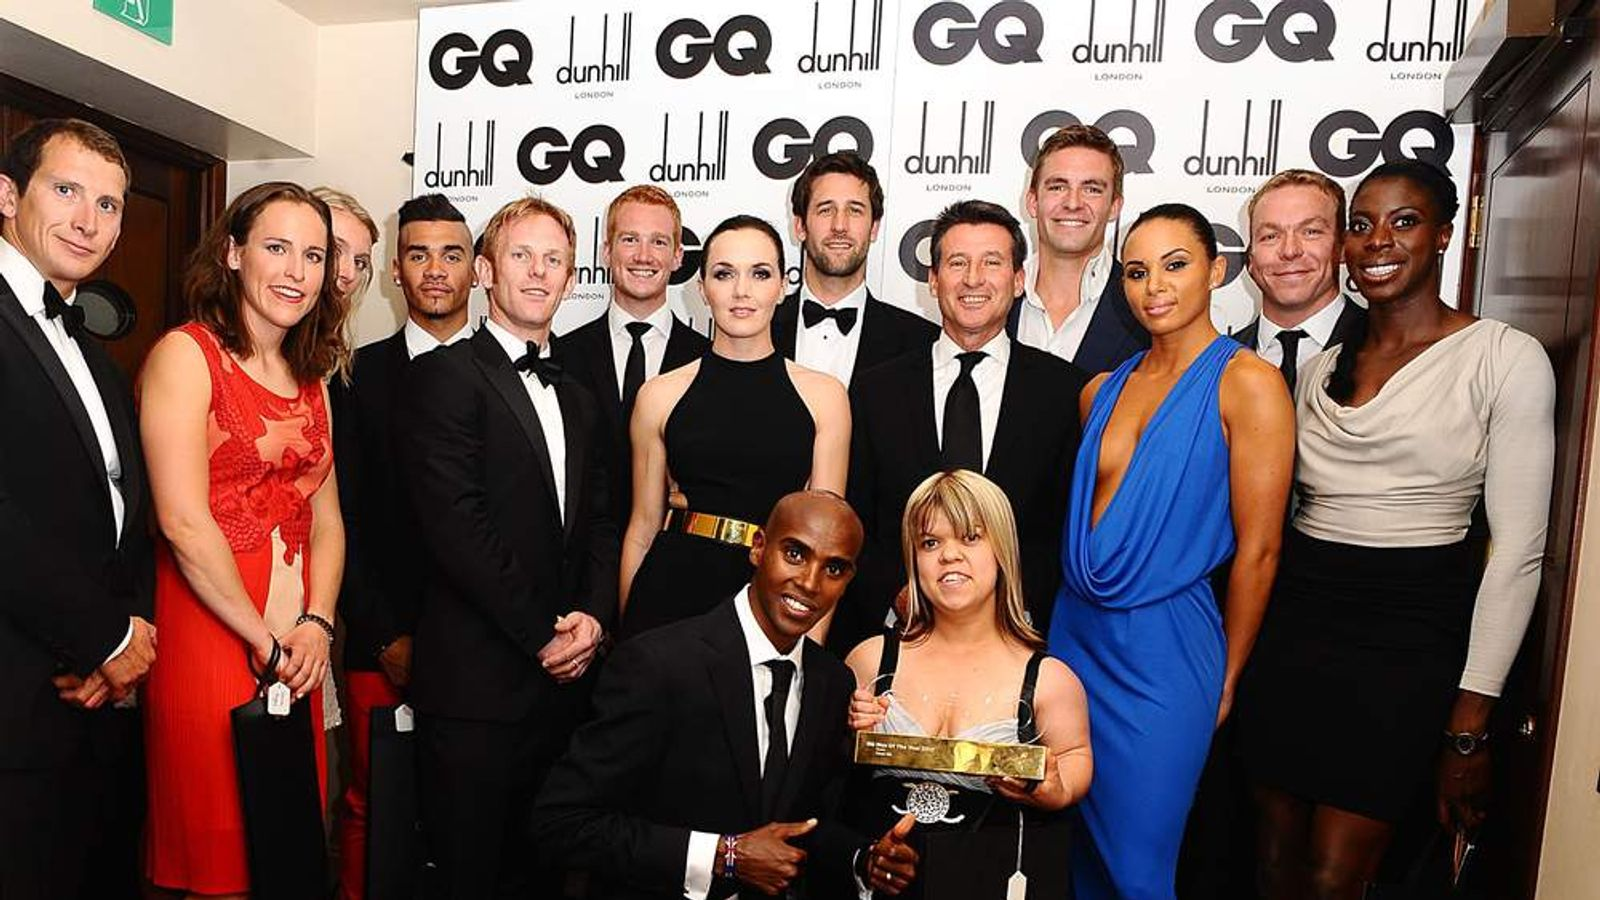 Team GB Stars At GQ Awards